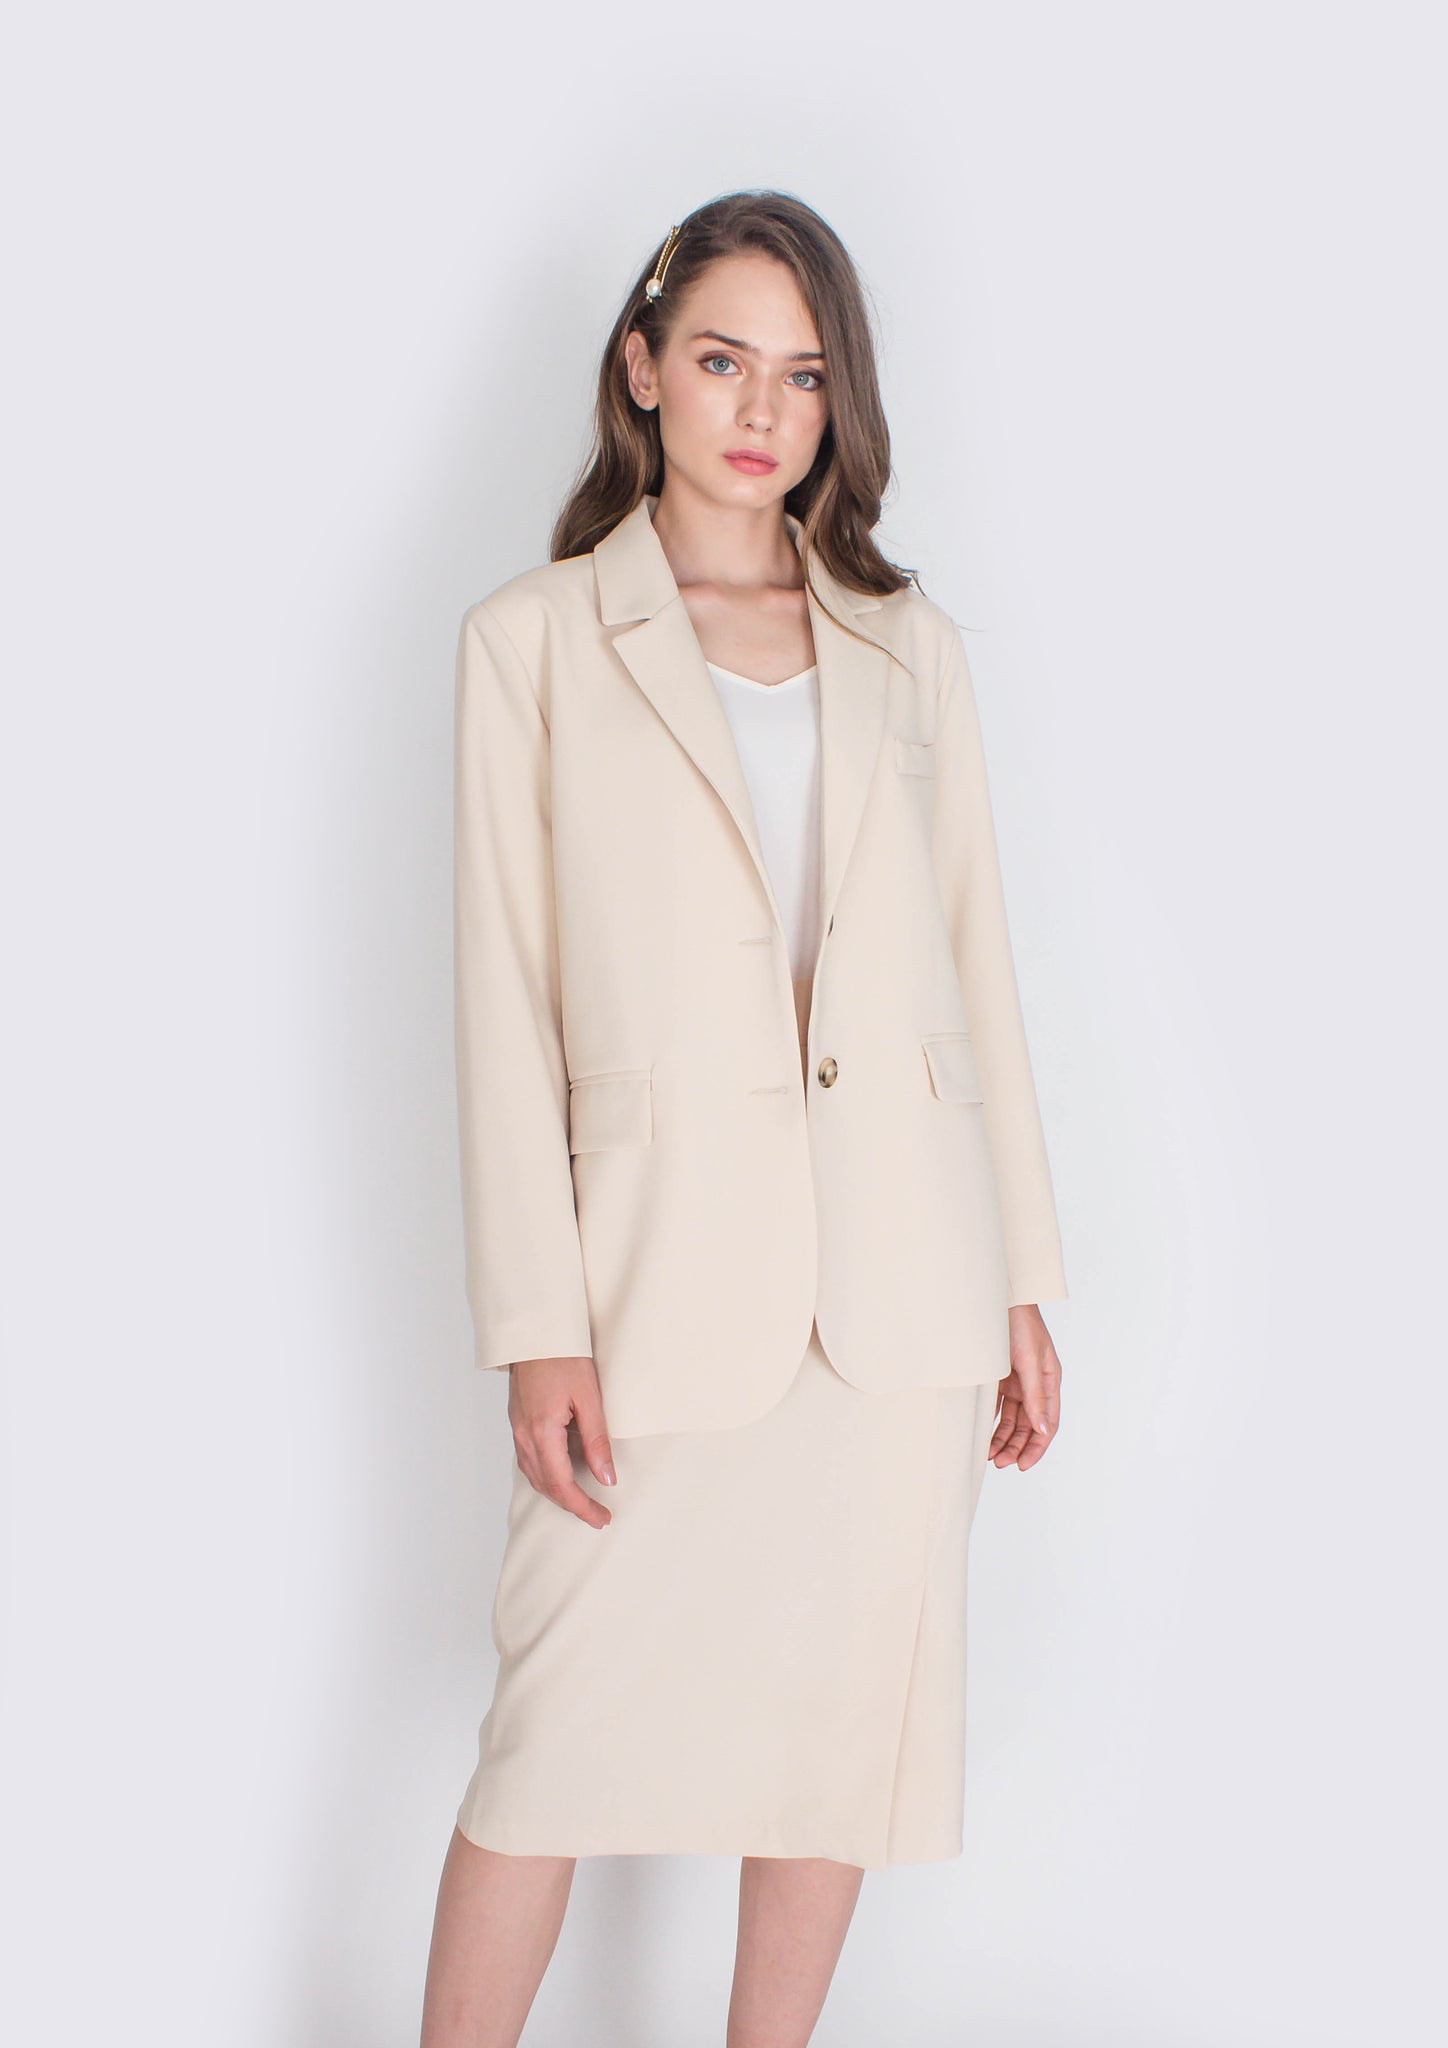 Hepburn Structured Blazer and Skirt Set (Cream) - Moxie